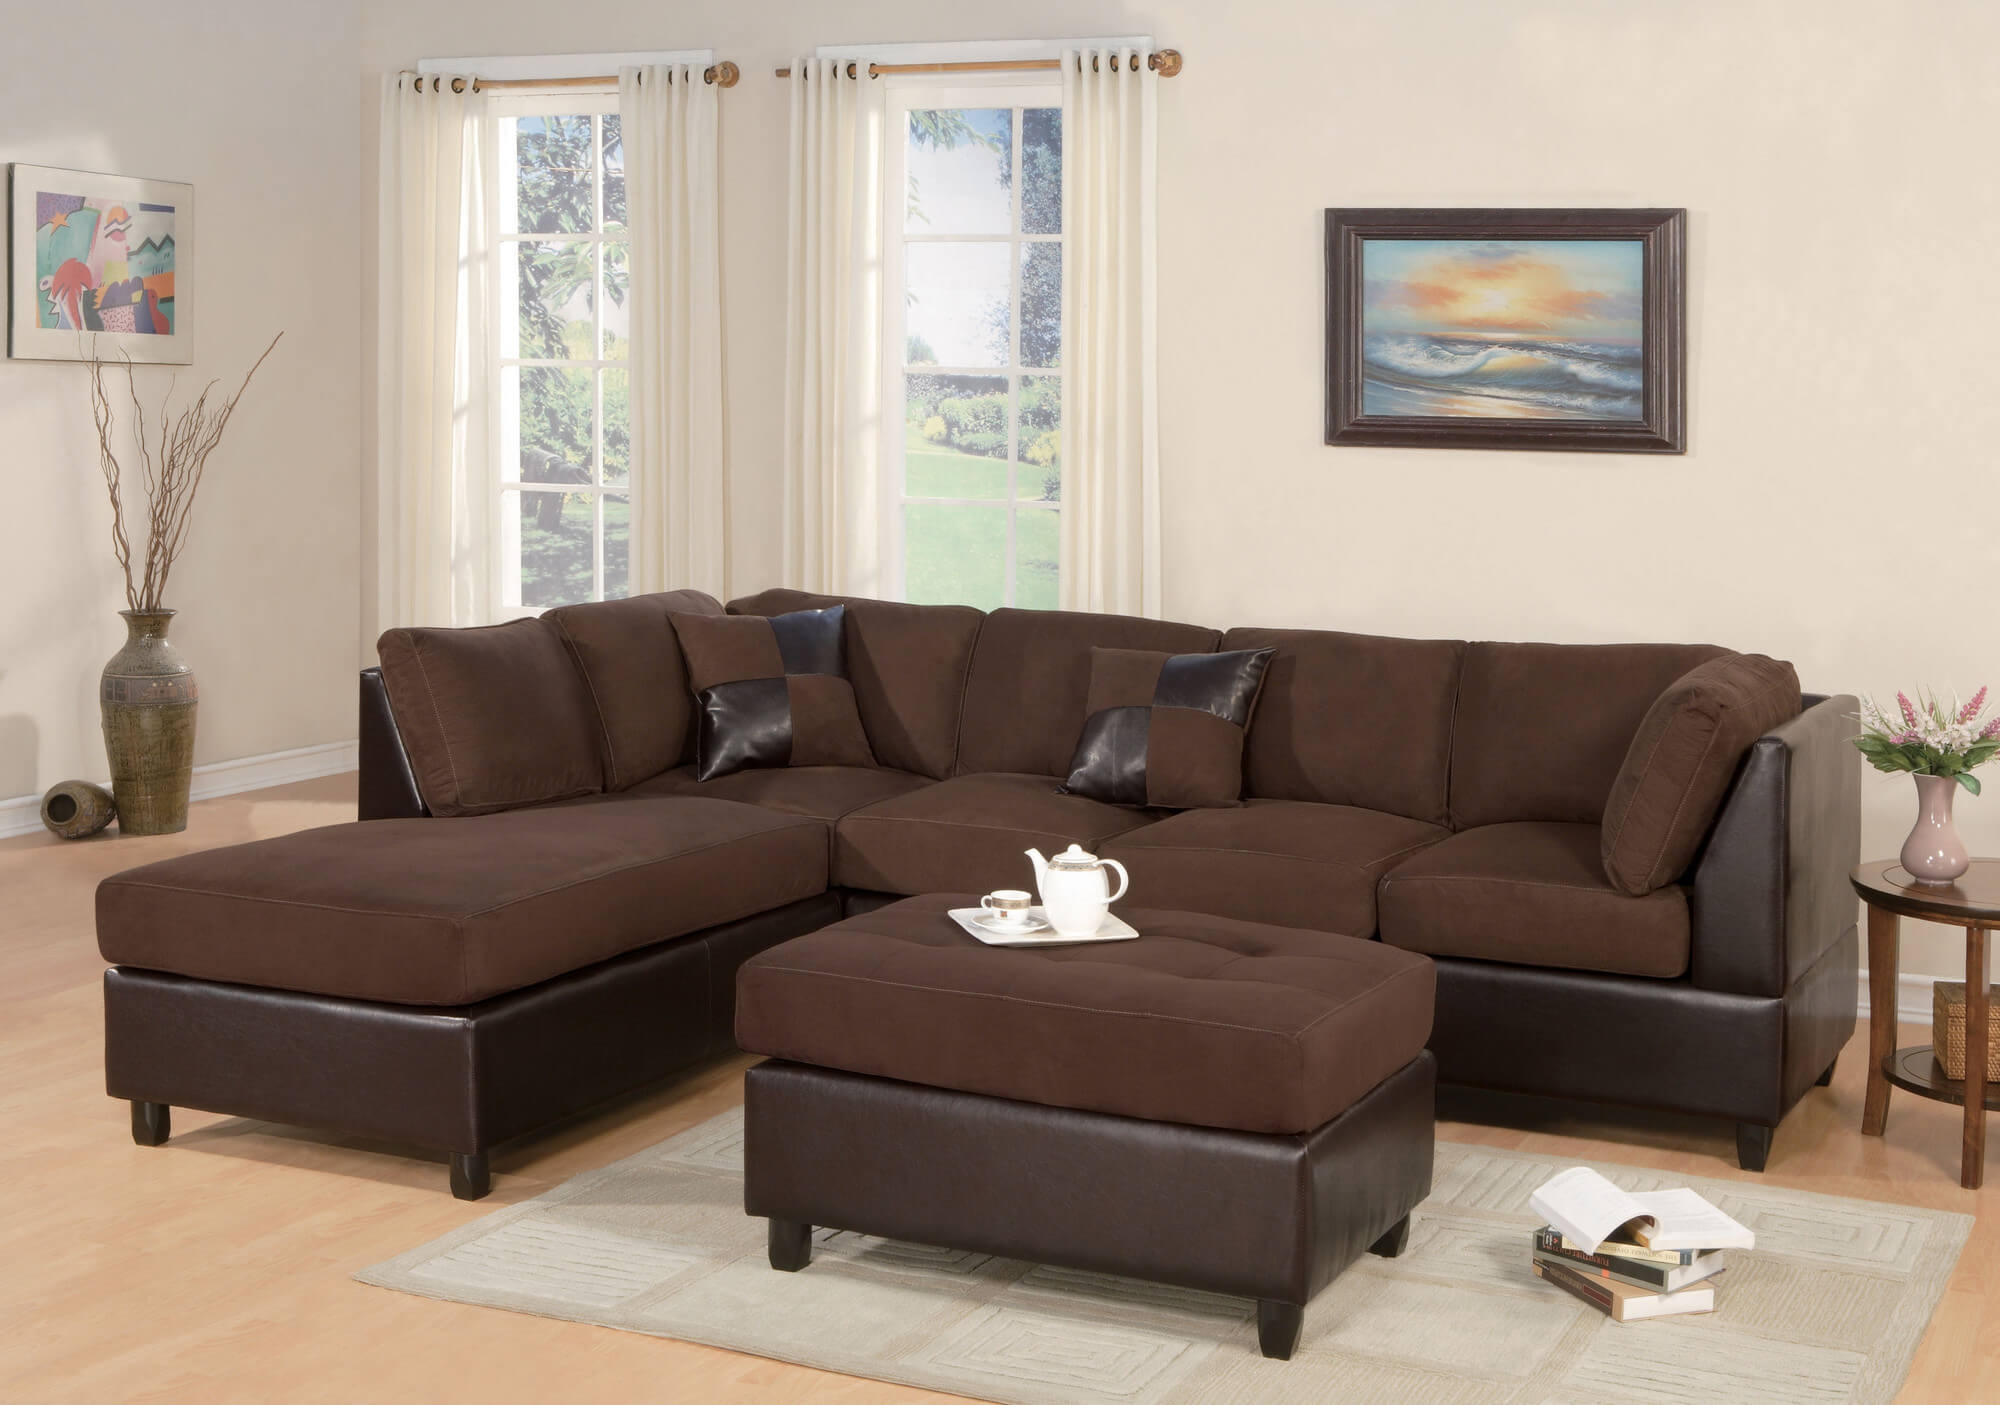 100 Beautiful Sectional Sofas Under 1000 Inside Chocolate Brown Sectional Sofa (Image 2 of 15)